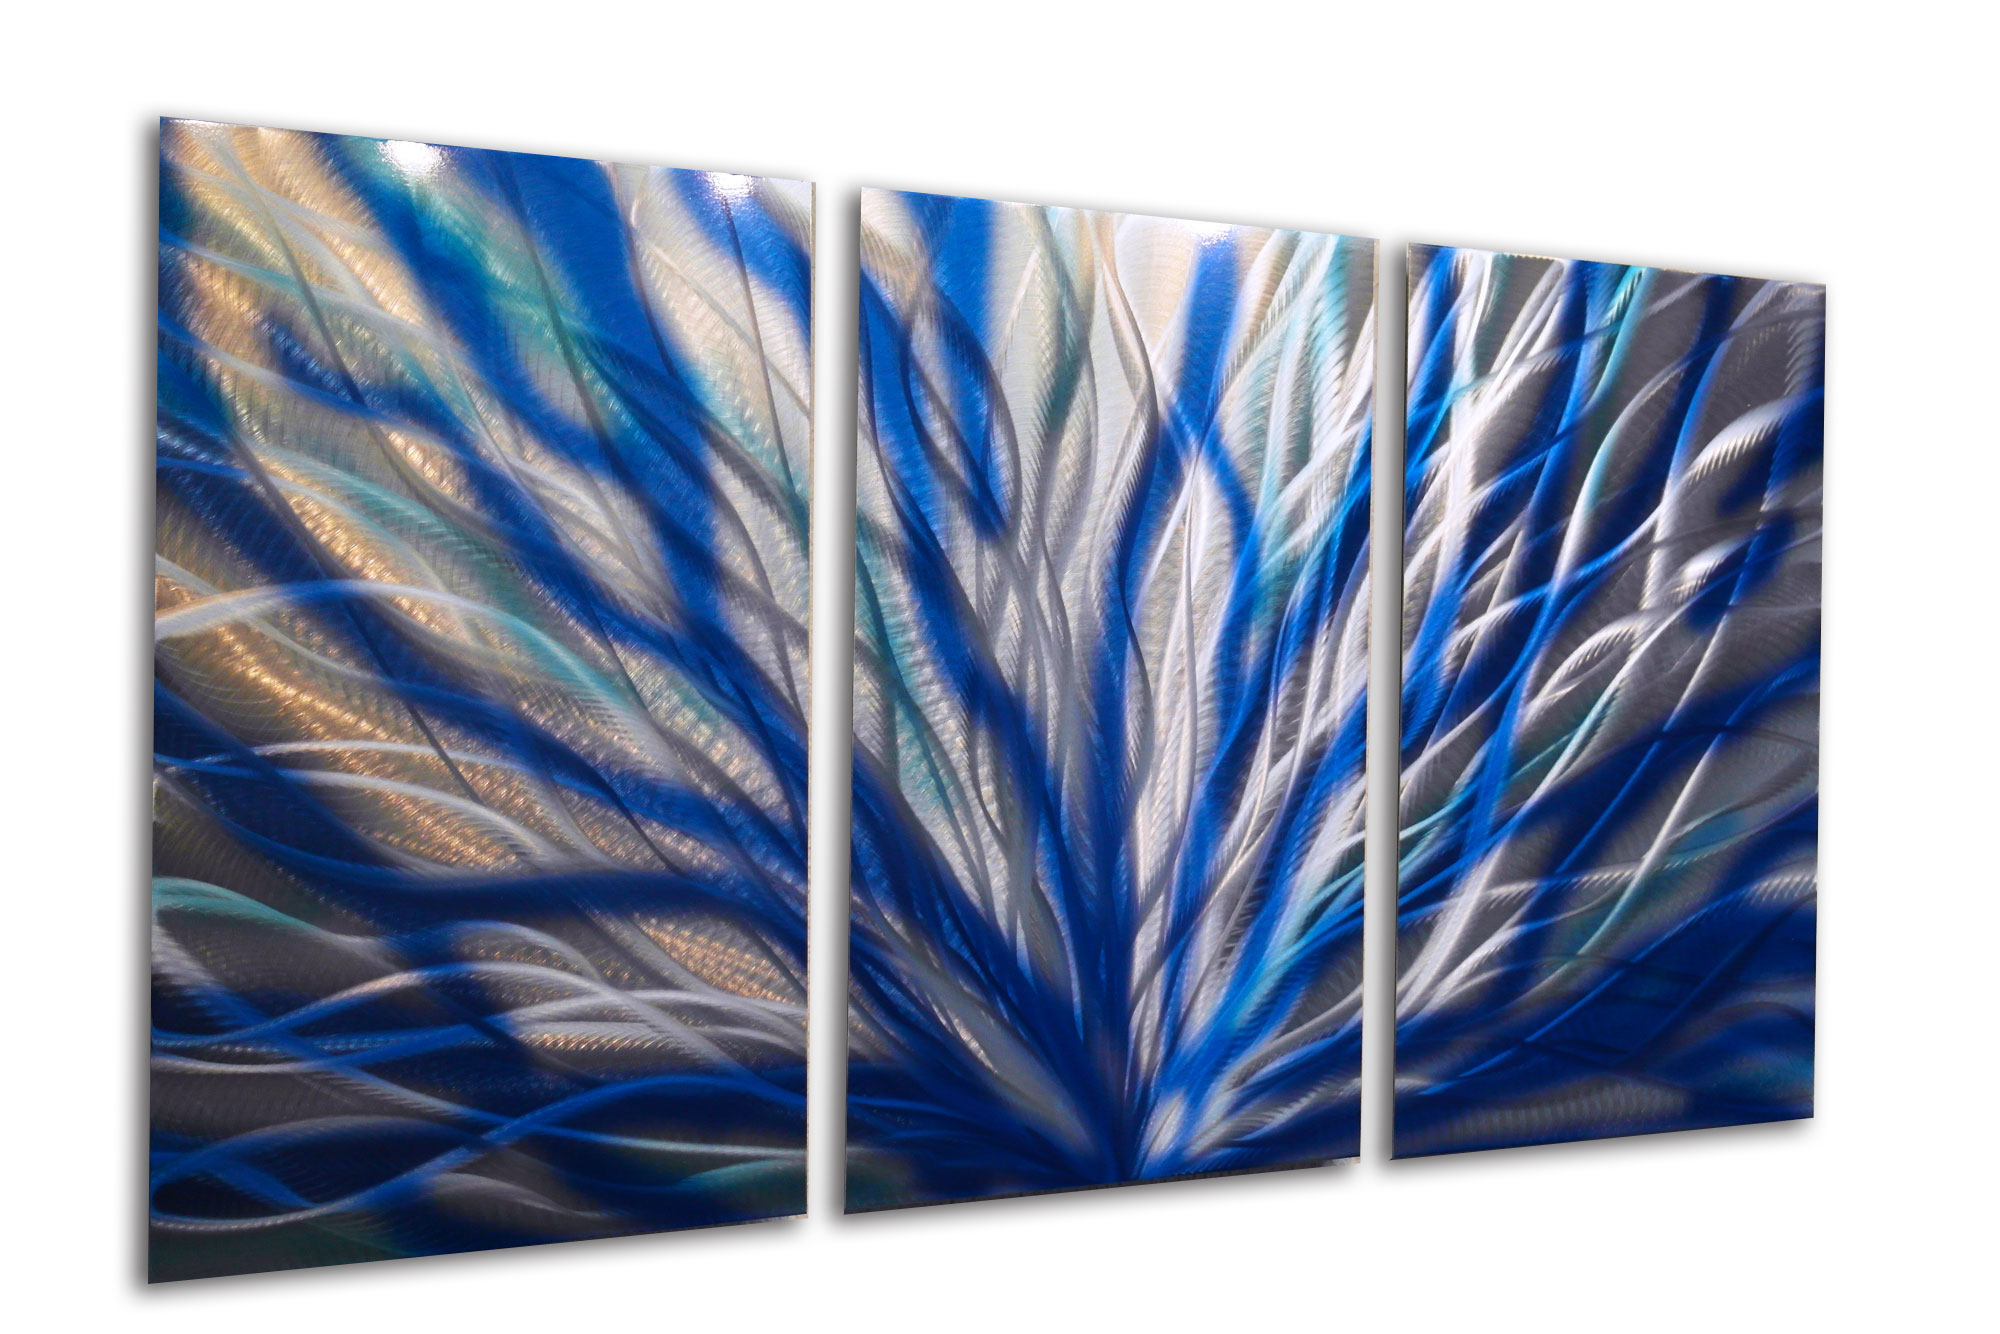 Blue Metal Wall Art Endearing Radiance Blue 47 V2  Metal Wall Art Abstract Sculpture Modern Design Ideas